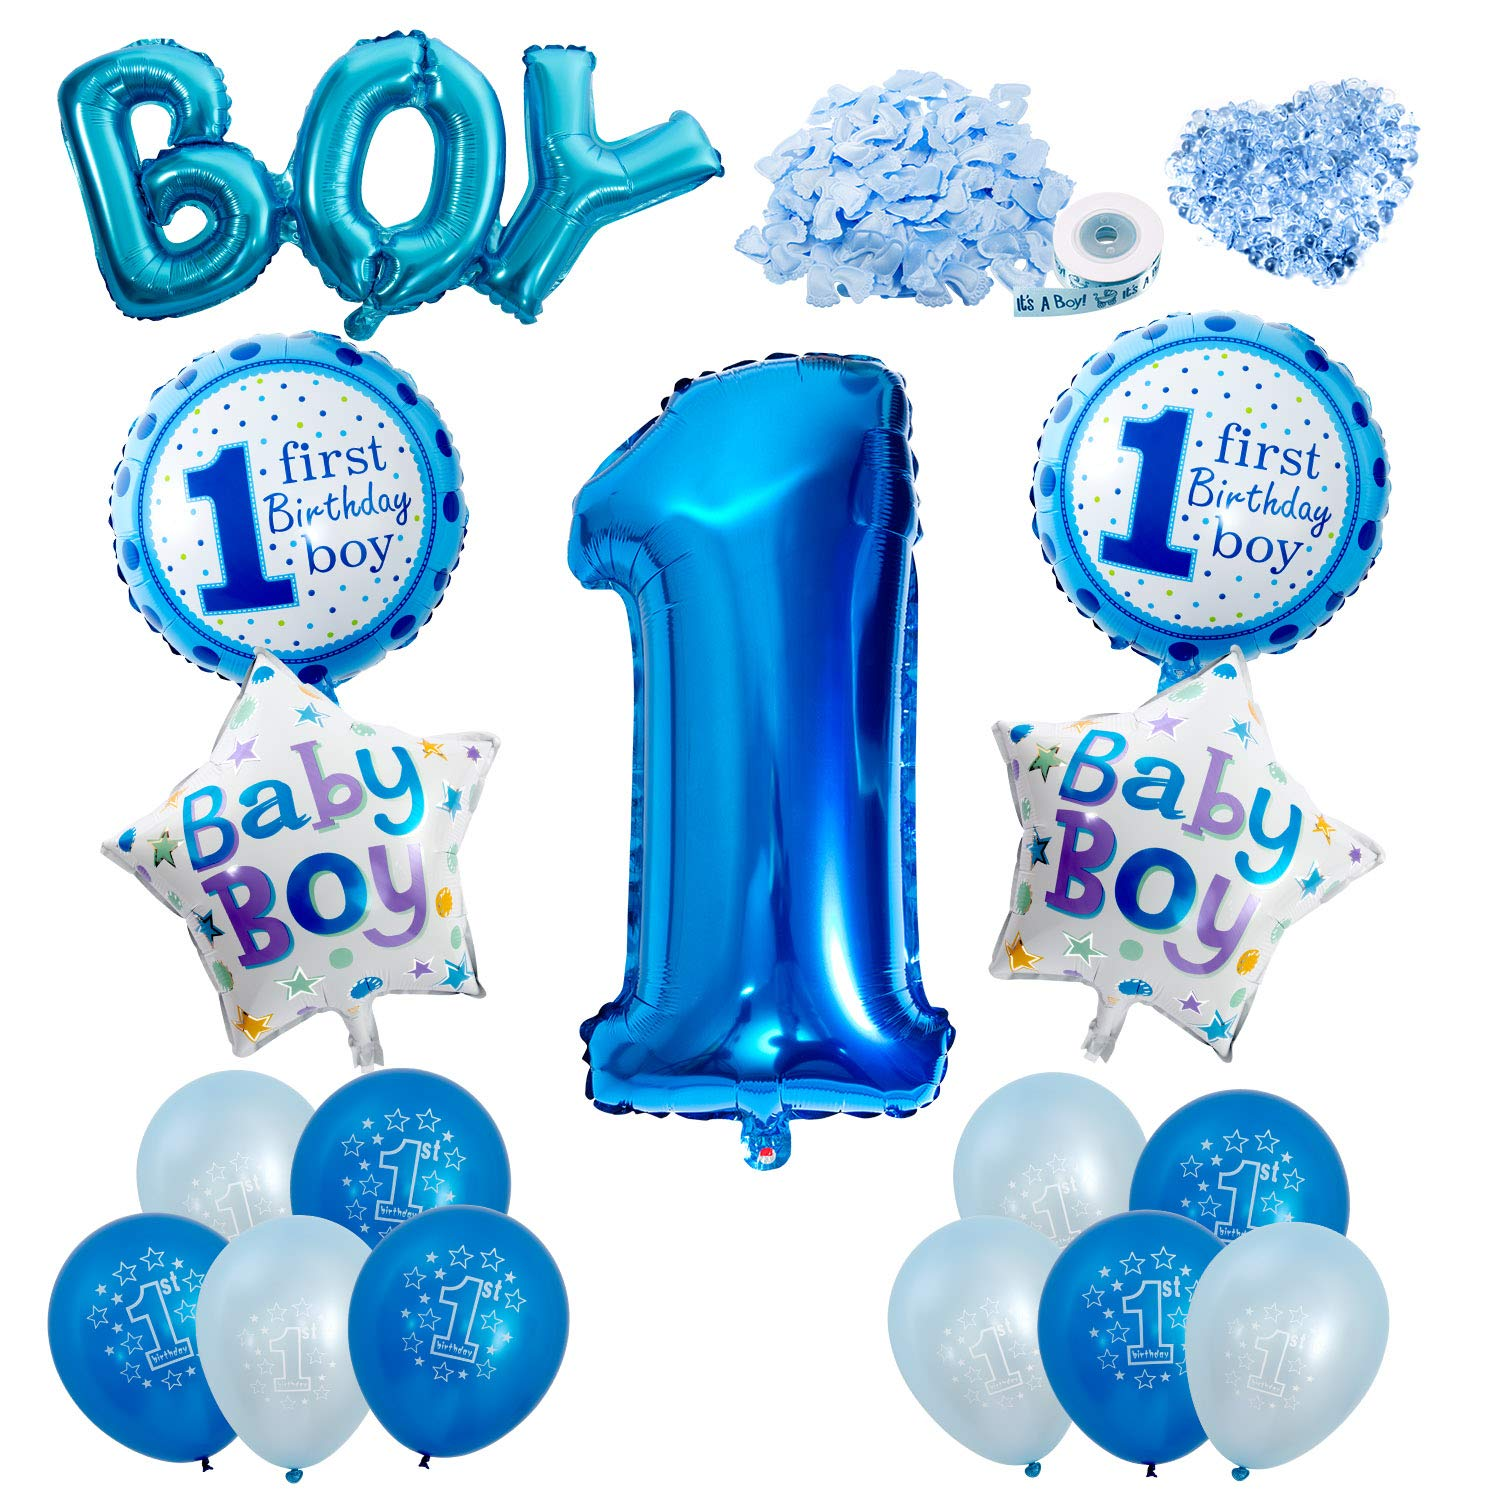 Vordas Happy Birthday Baby Boy Jungen 1 Geburtstag Party Luftballons Set Supplies Perfekte Dekoration Fur Babyparty Amazonde Spielzeug